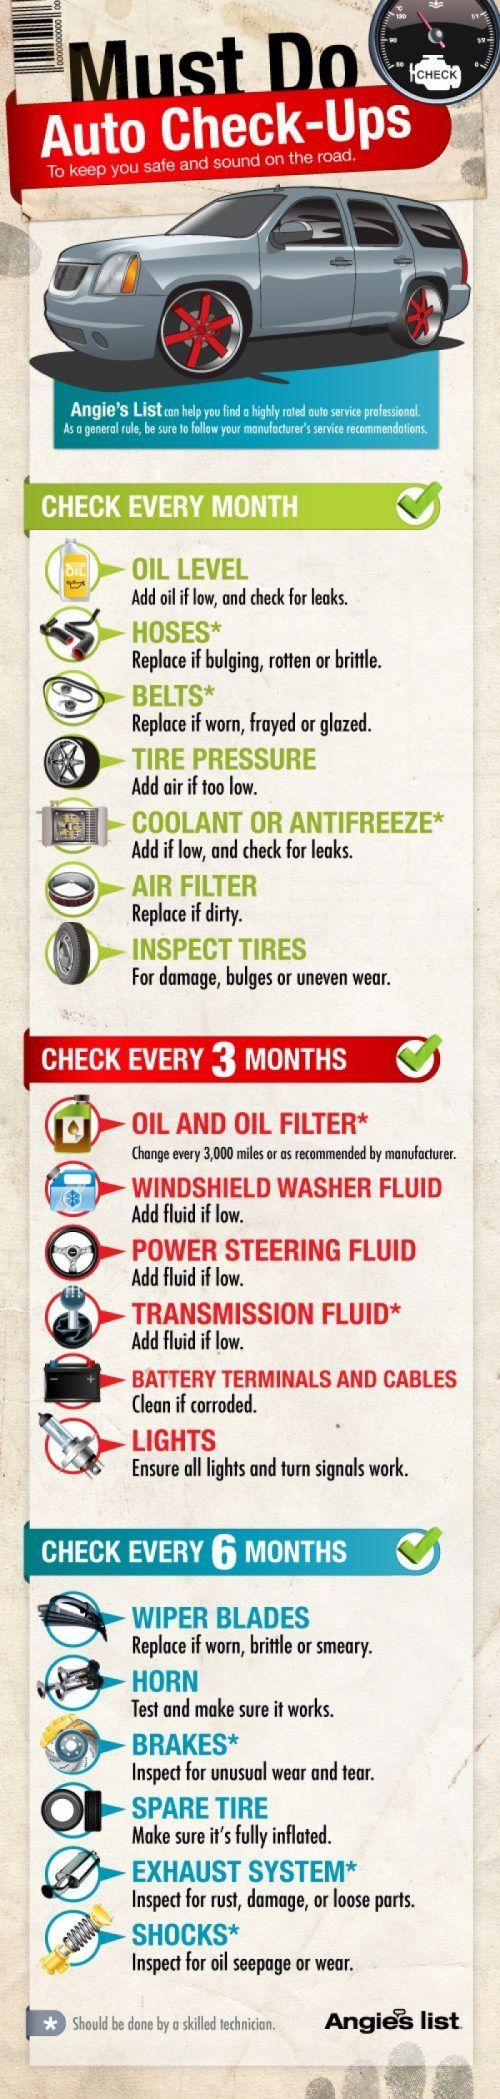 Know when to check everything – oil, wiper blades, brakes, and more! Winning Car Hacks for Moms on Frugal Coupon Living.